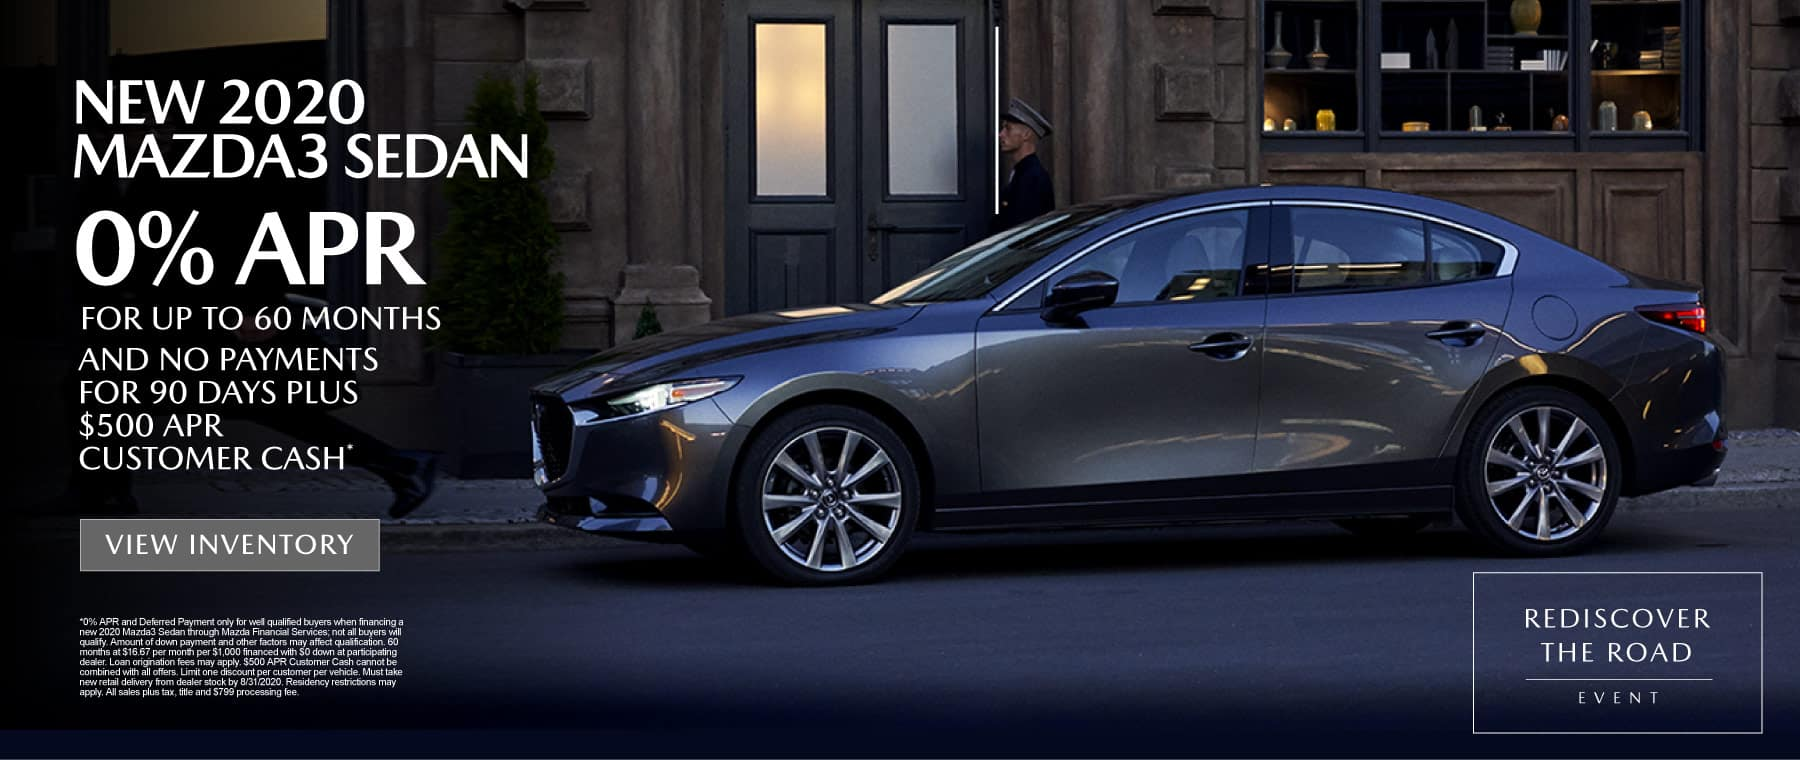 New 2020 Mazda3 - 0% APR for up to 60 months* - Click to View Inventory